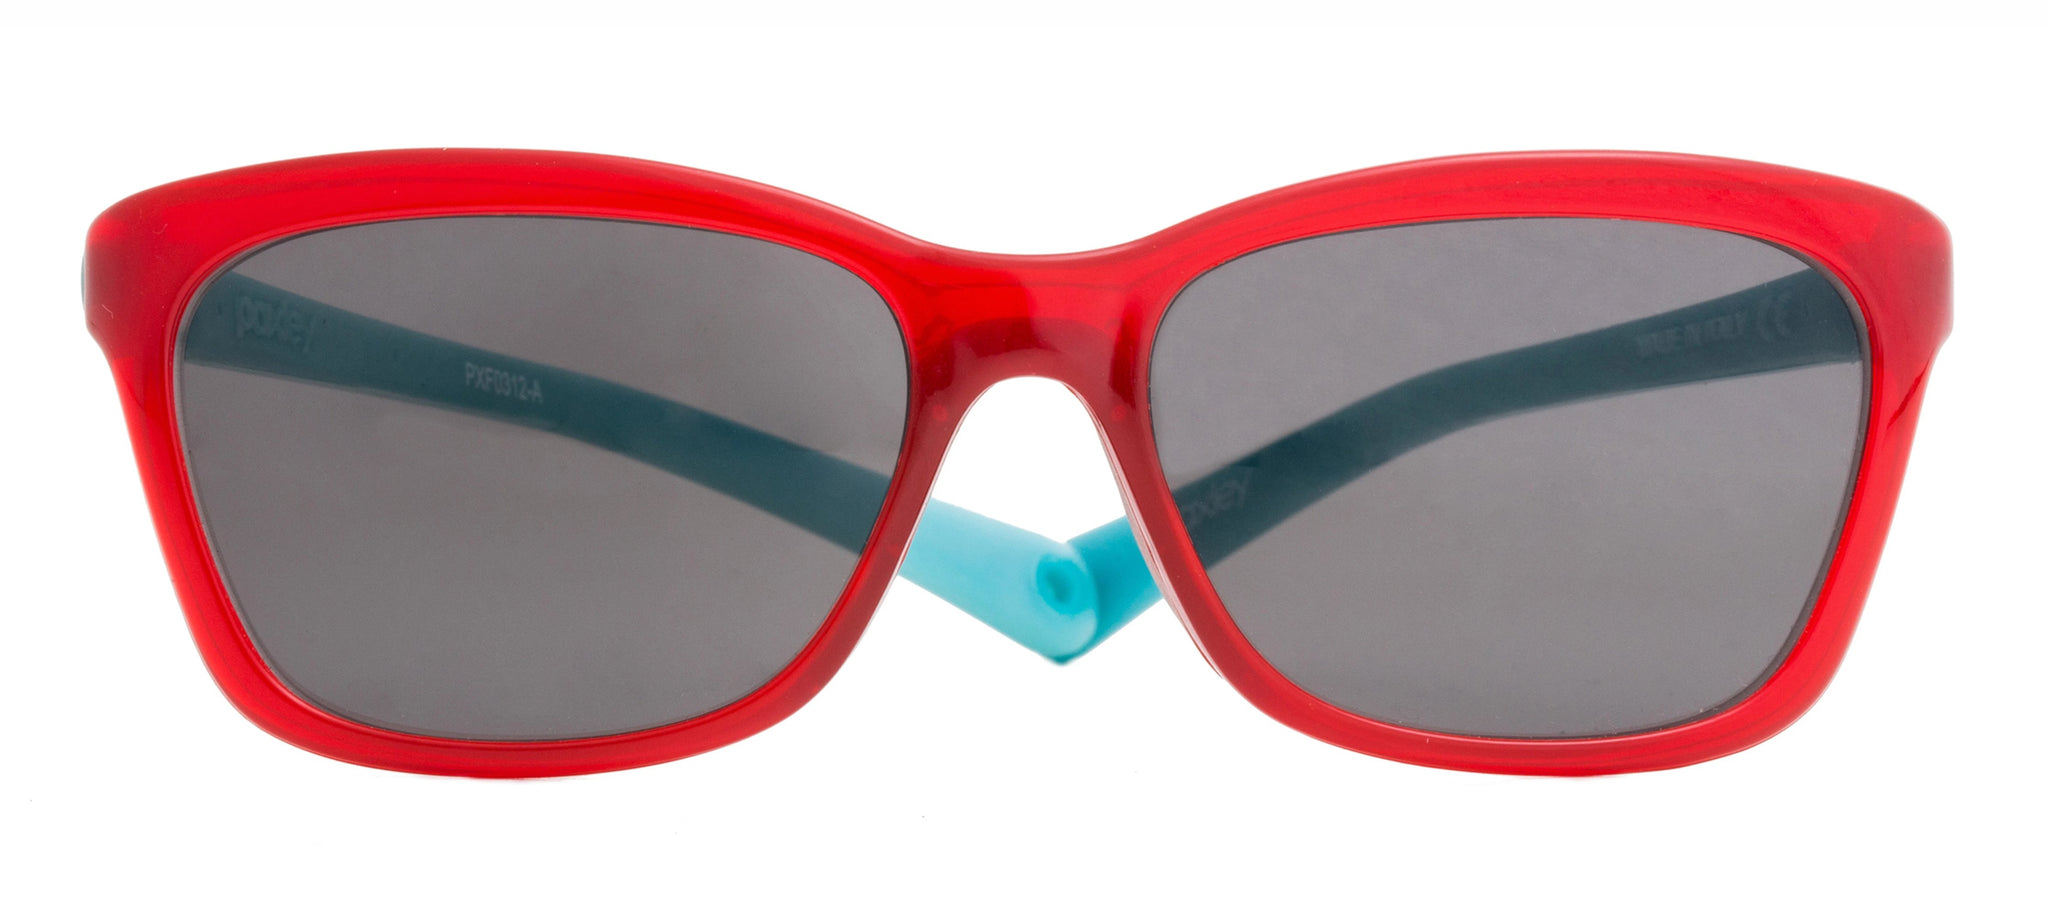 Paxley Pico Sunglasses - Red Cyan